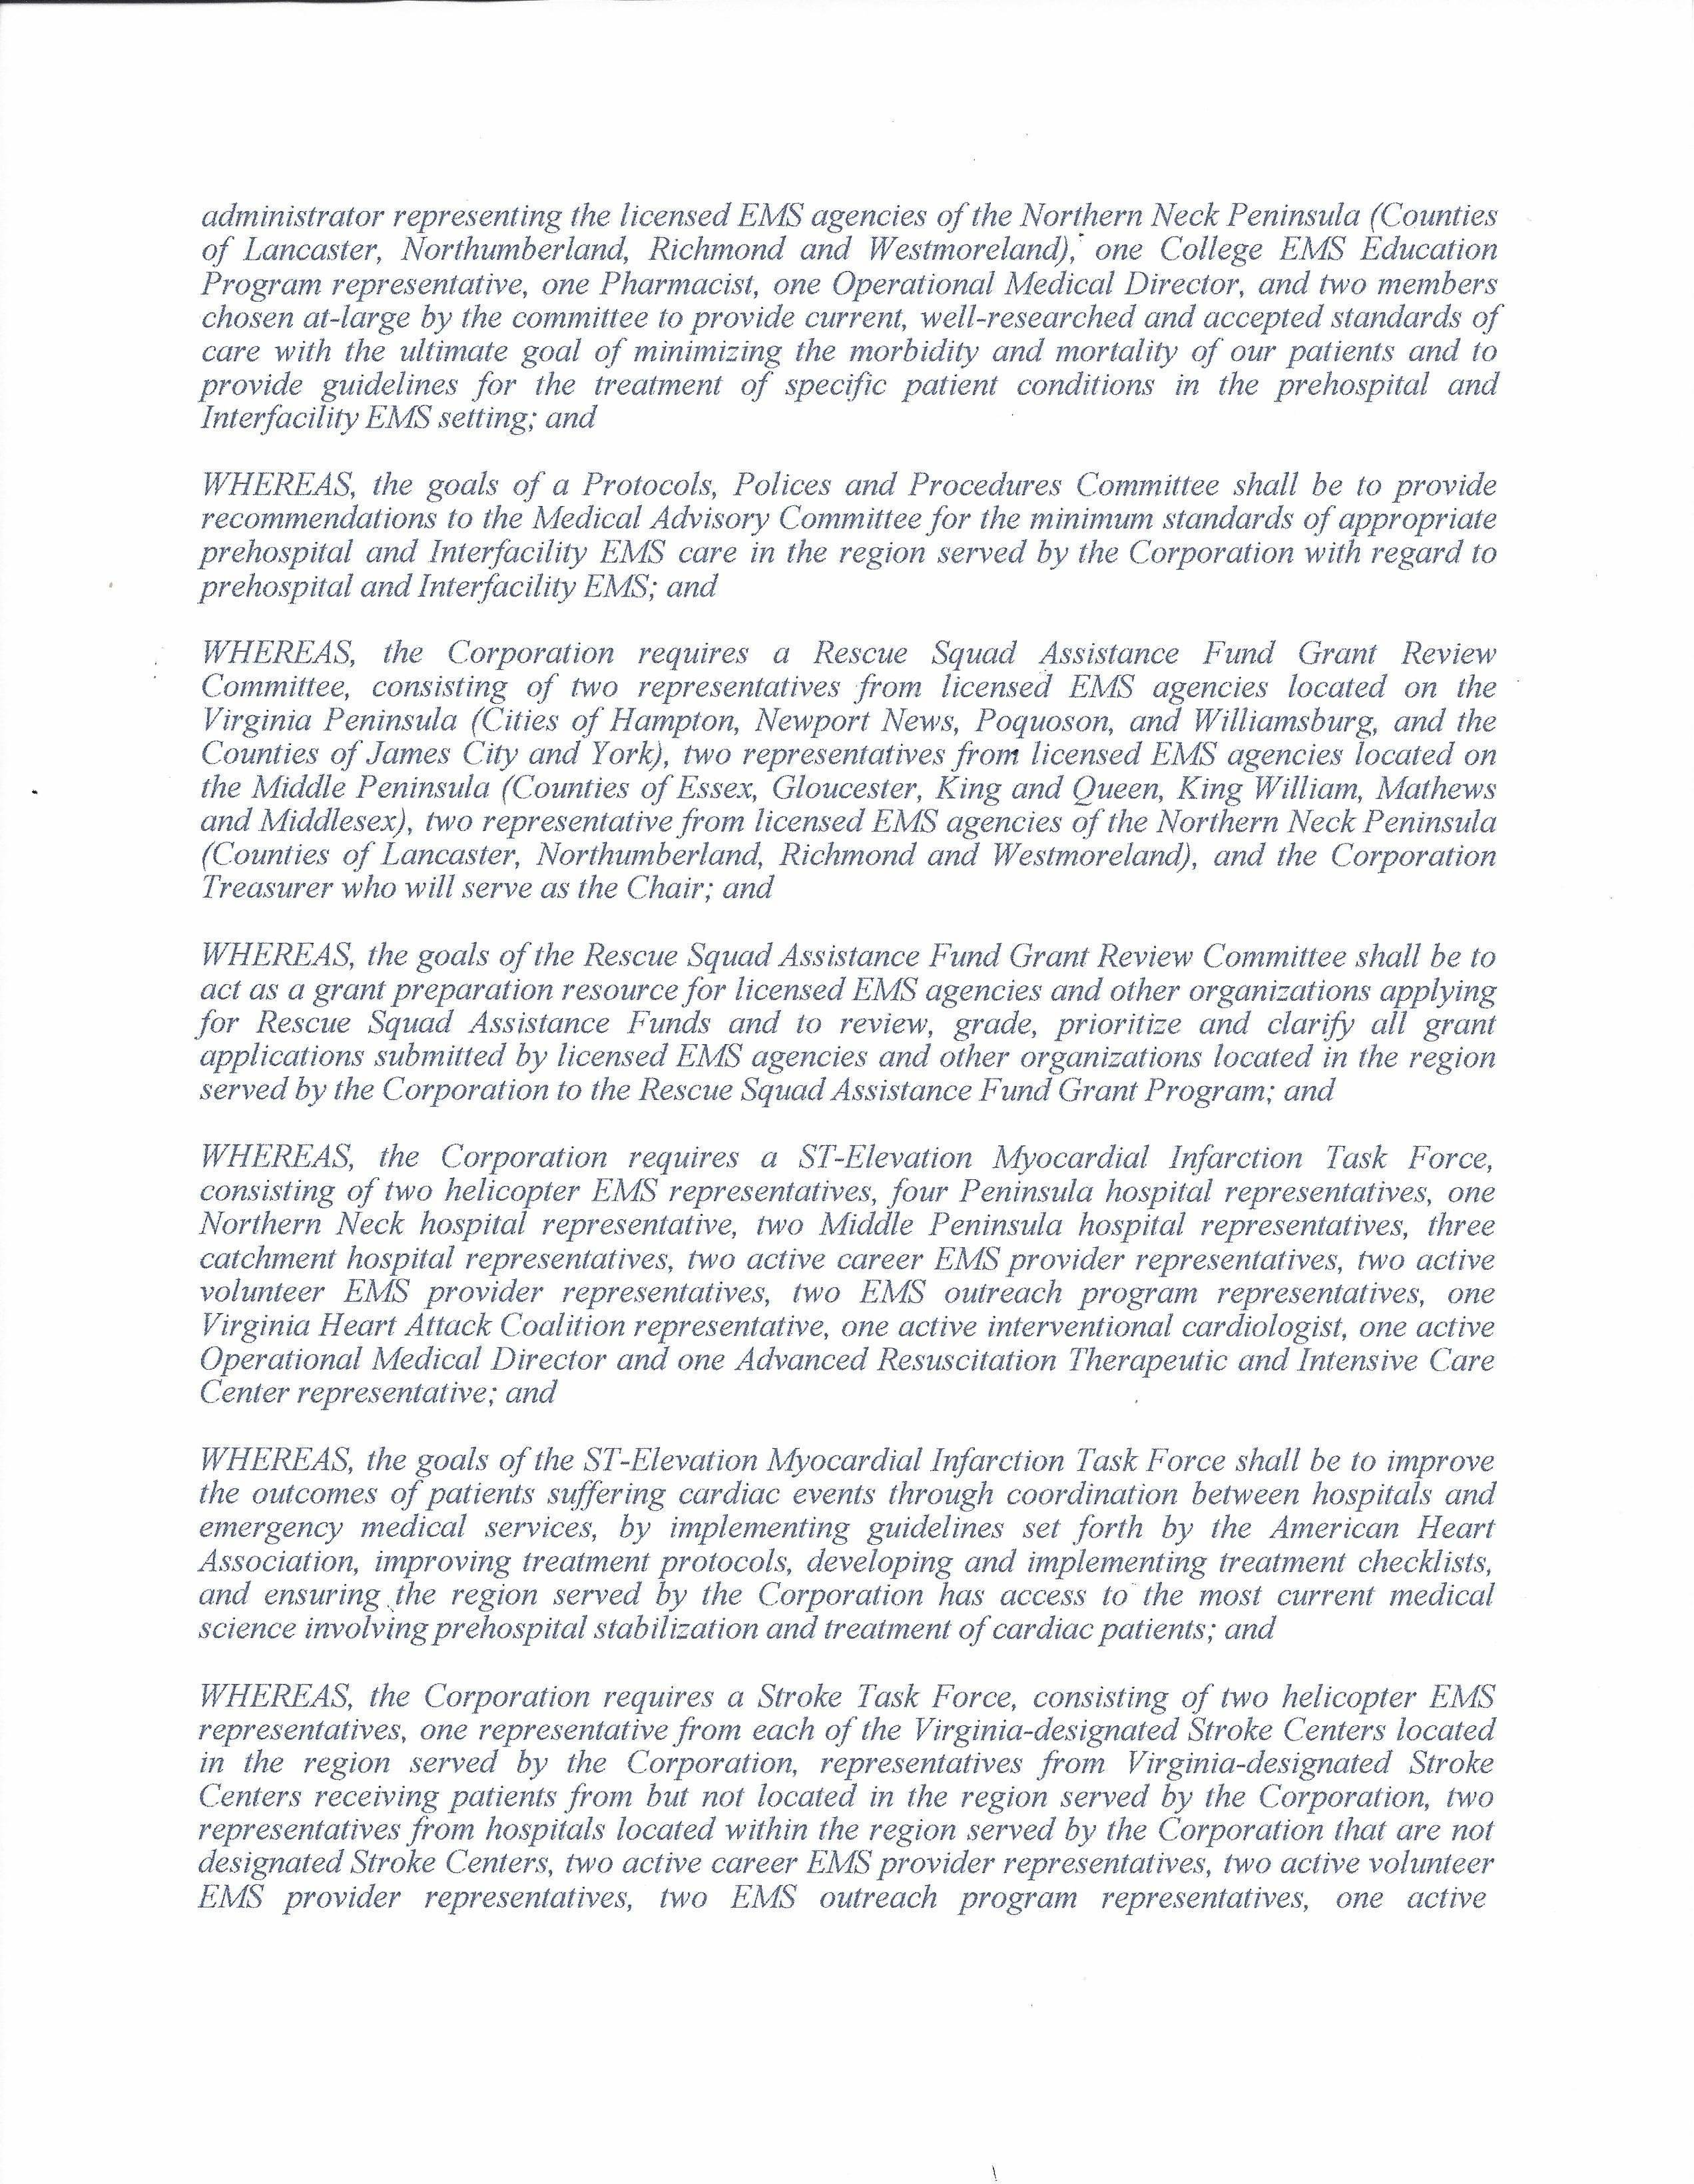 Resolution To Establish Additional Standing Committees 06 21 17 Page 4